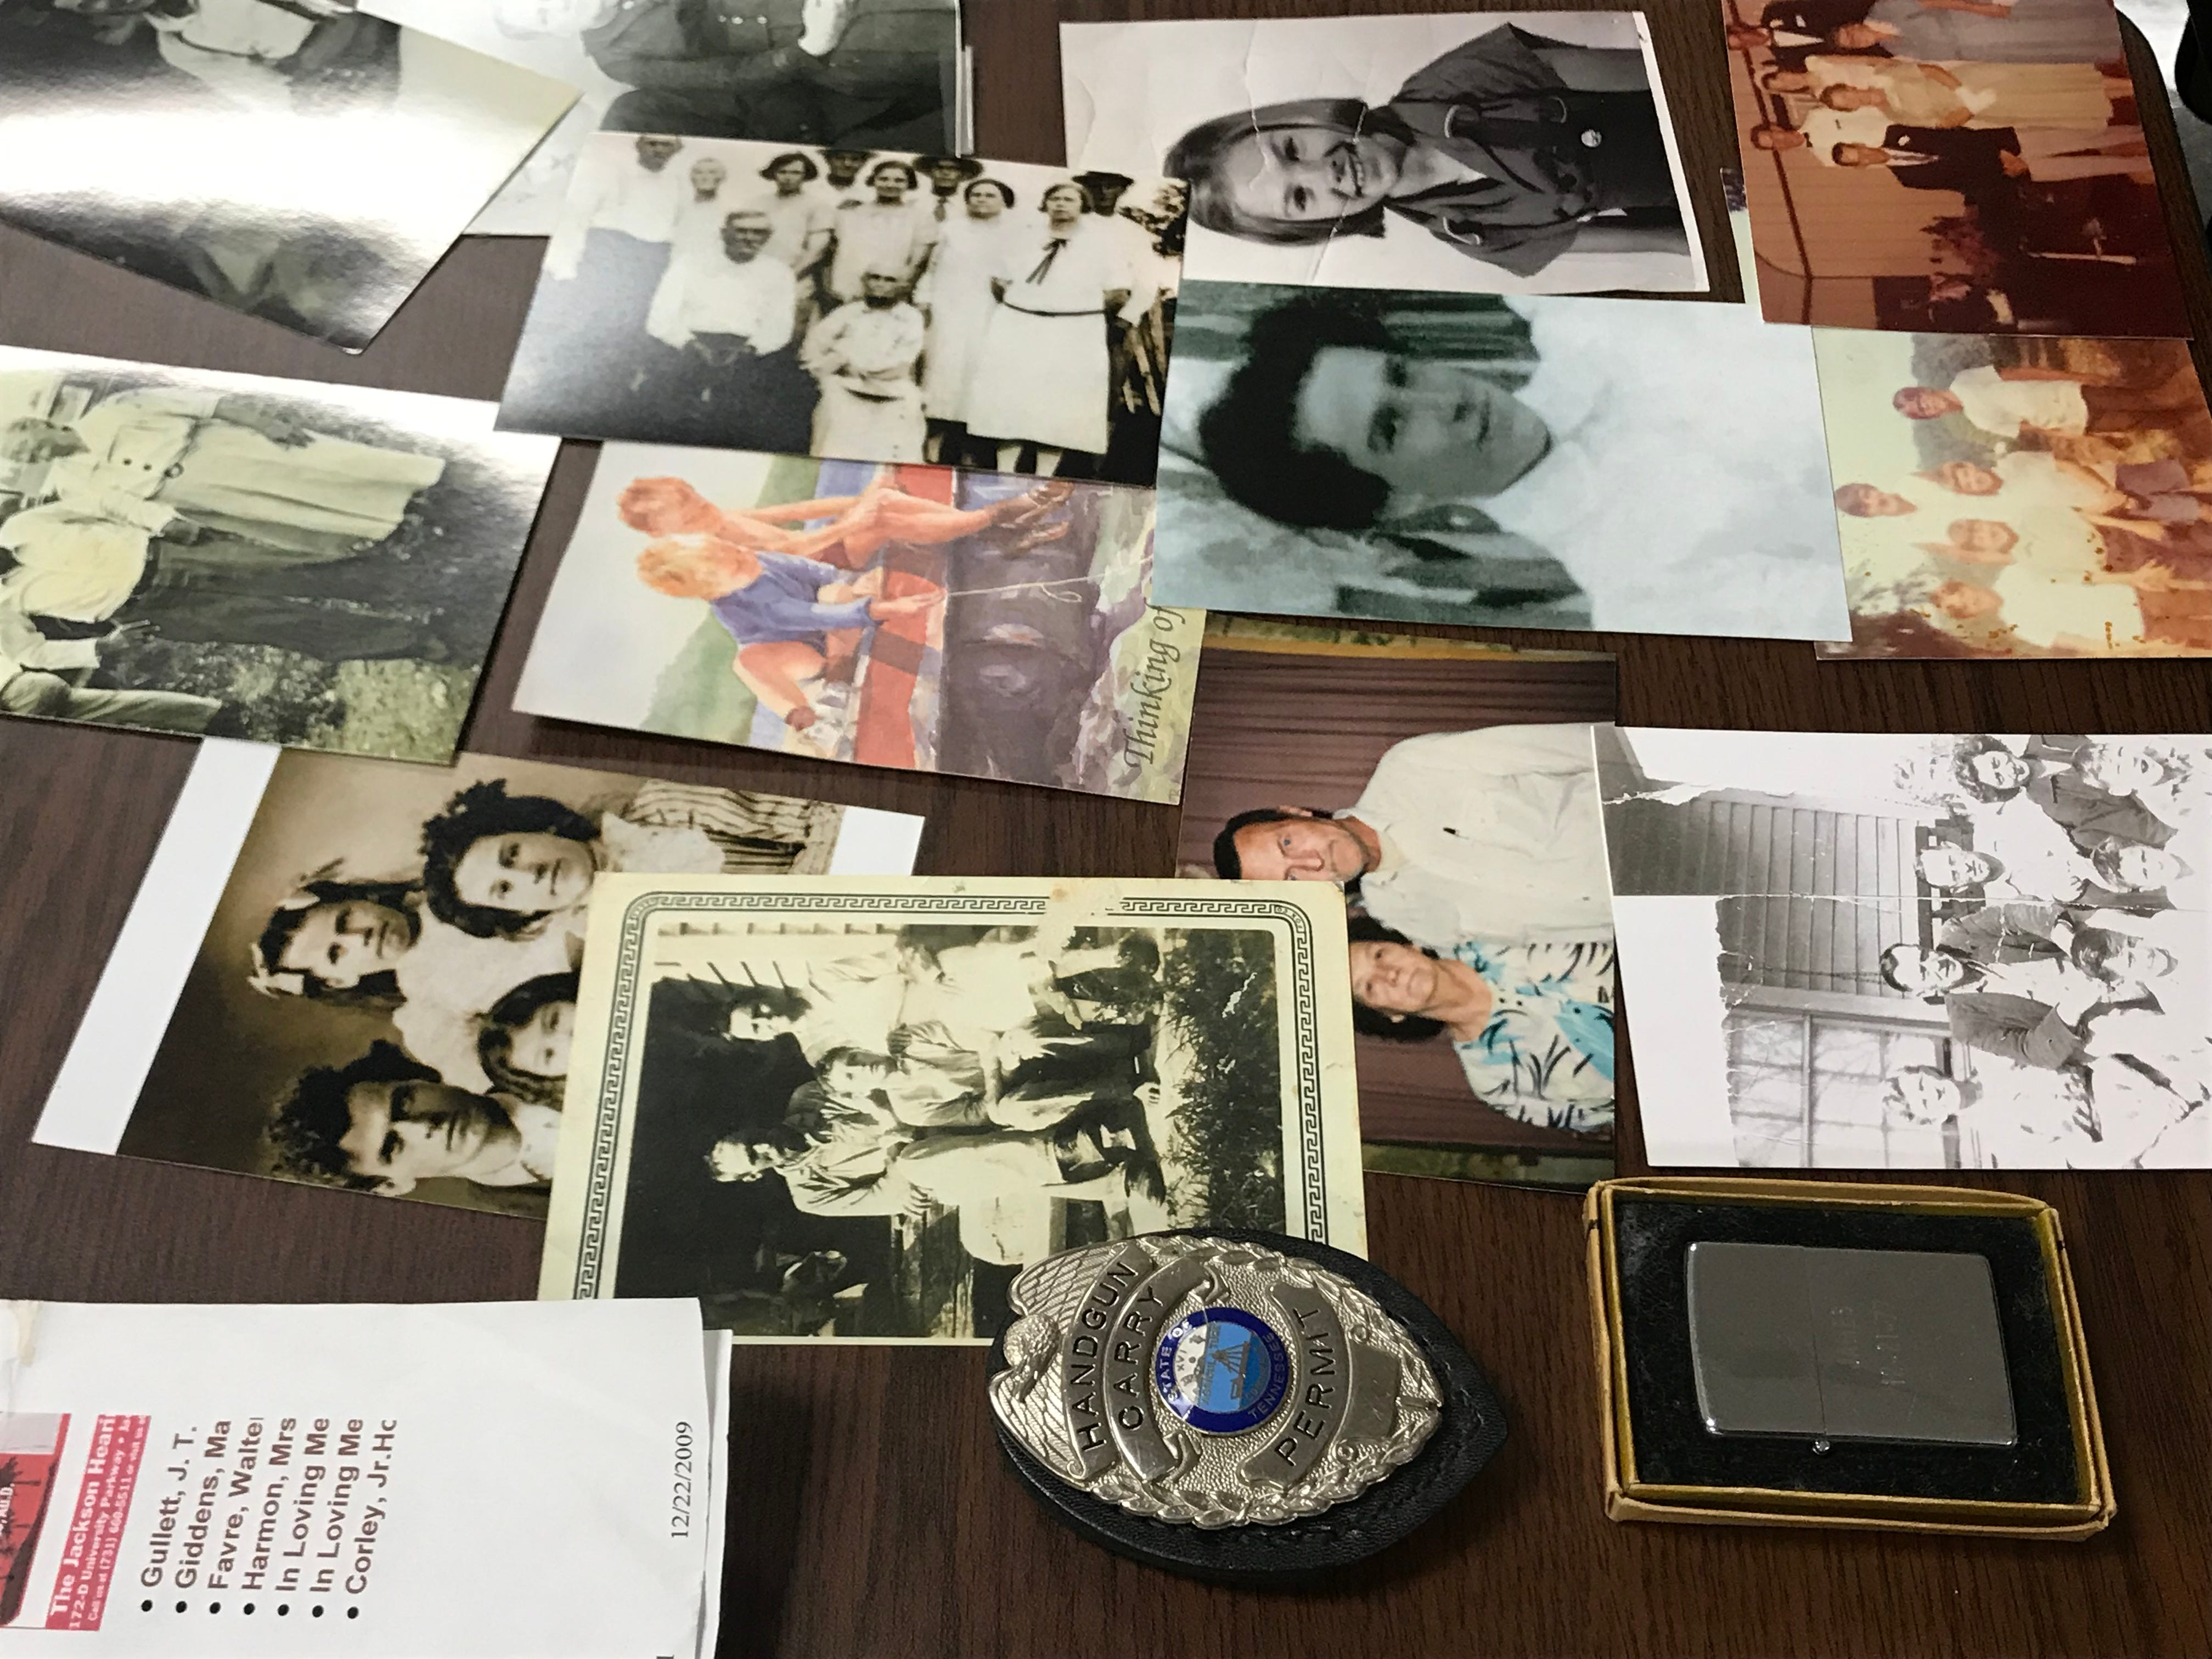 Family photos were among hundreds of items Madison County Sheriff's Office recovered from a theft ring believed to be targeting grieving families and others throughout West Tennessee.